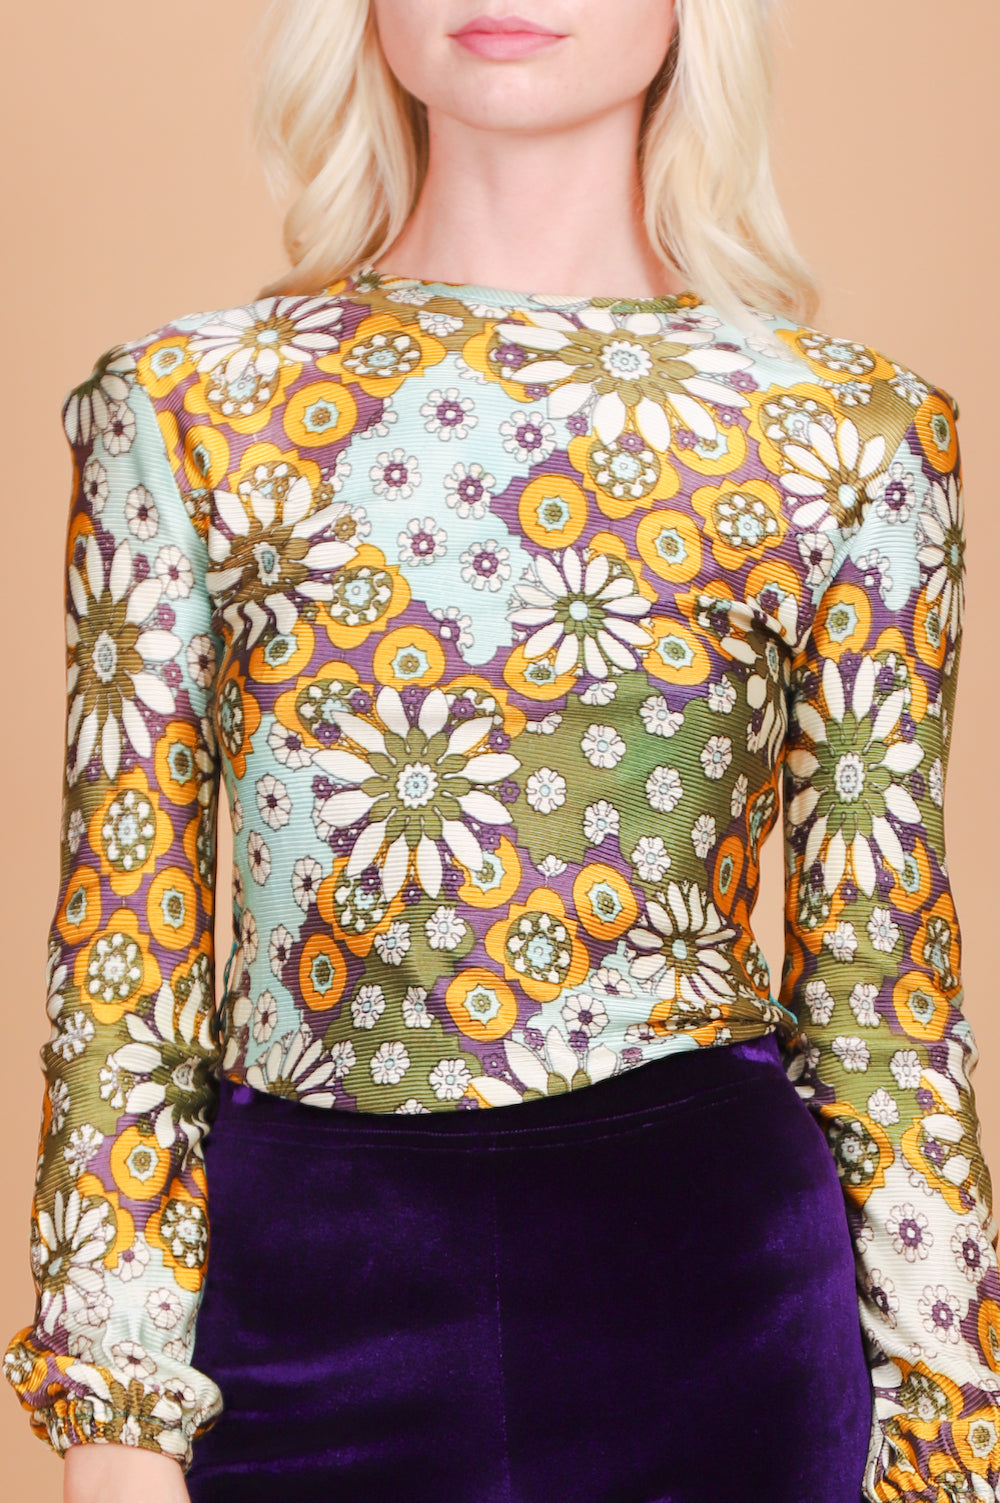 Vintage 1960's Psychedelic Dream Machine Top